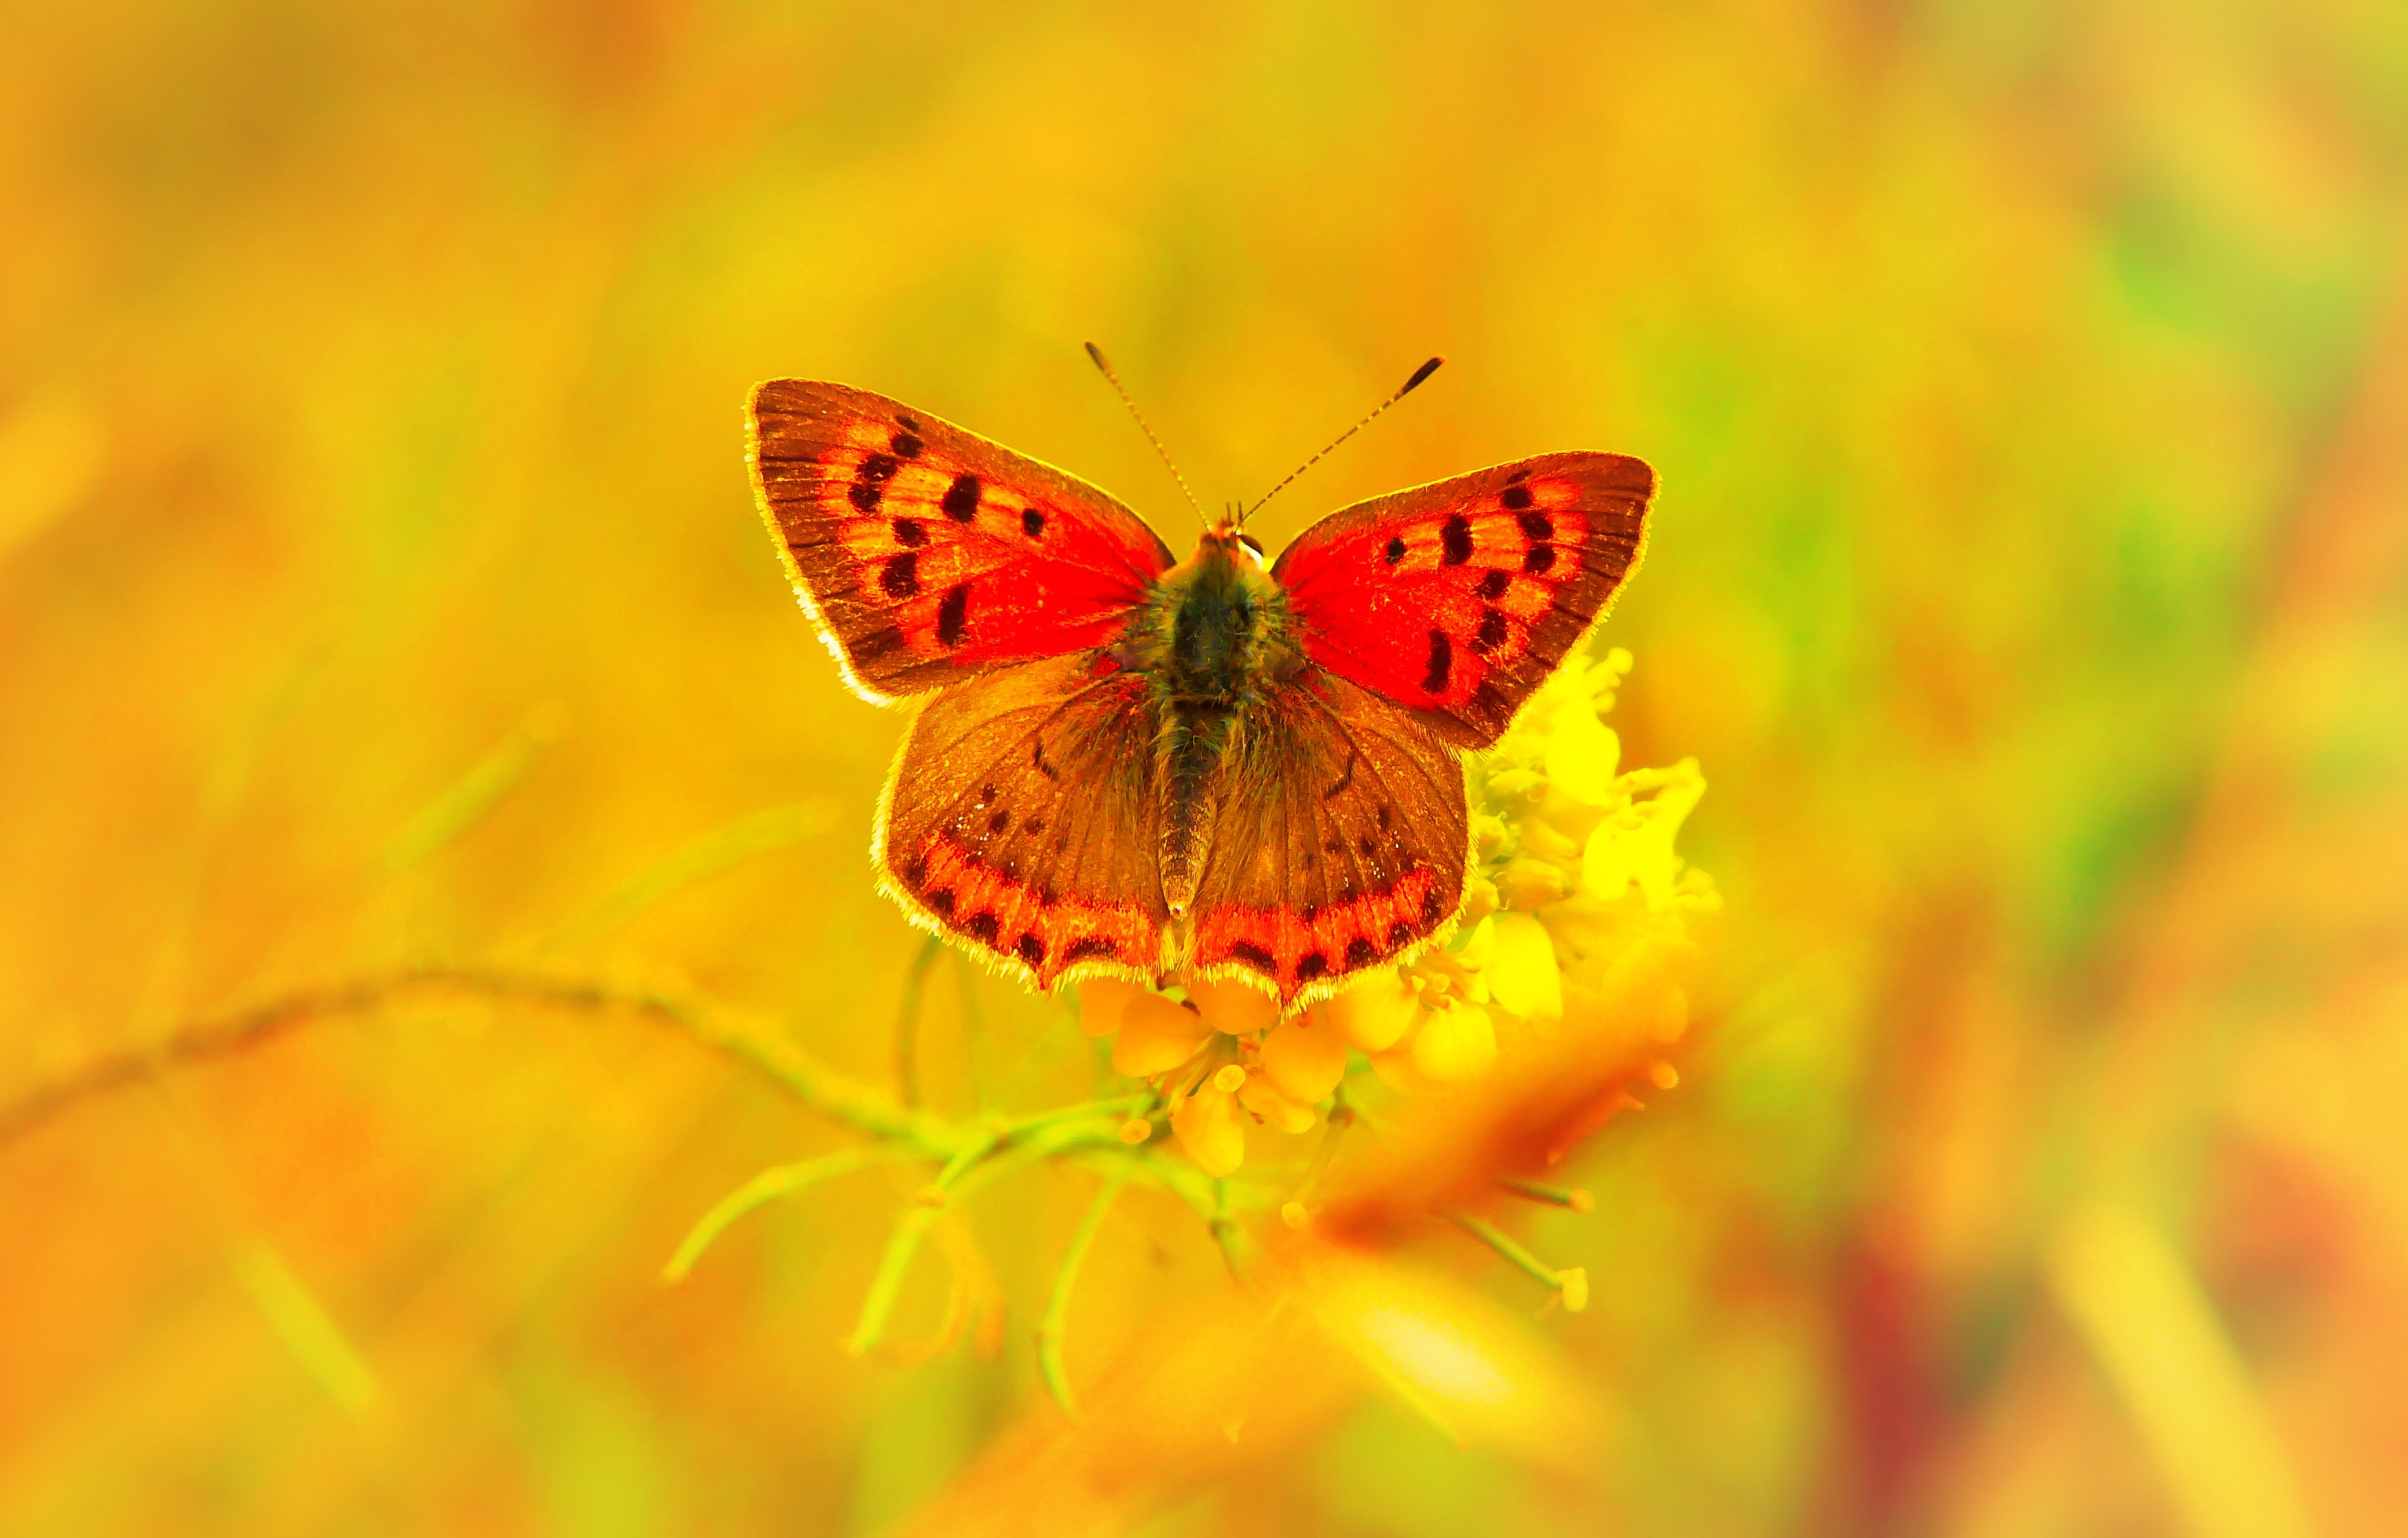 red and black butterfly perched on yellow petaled flower